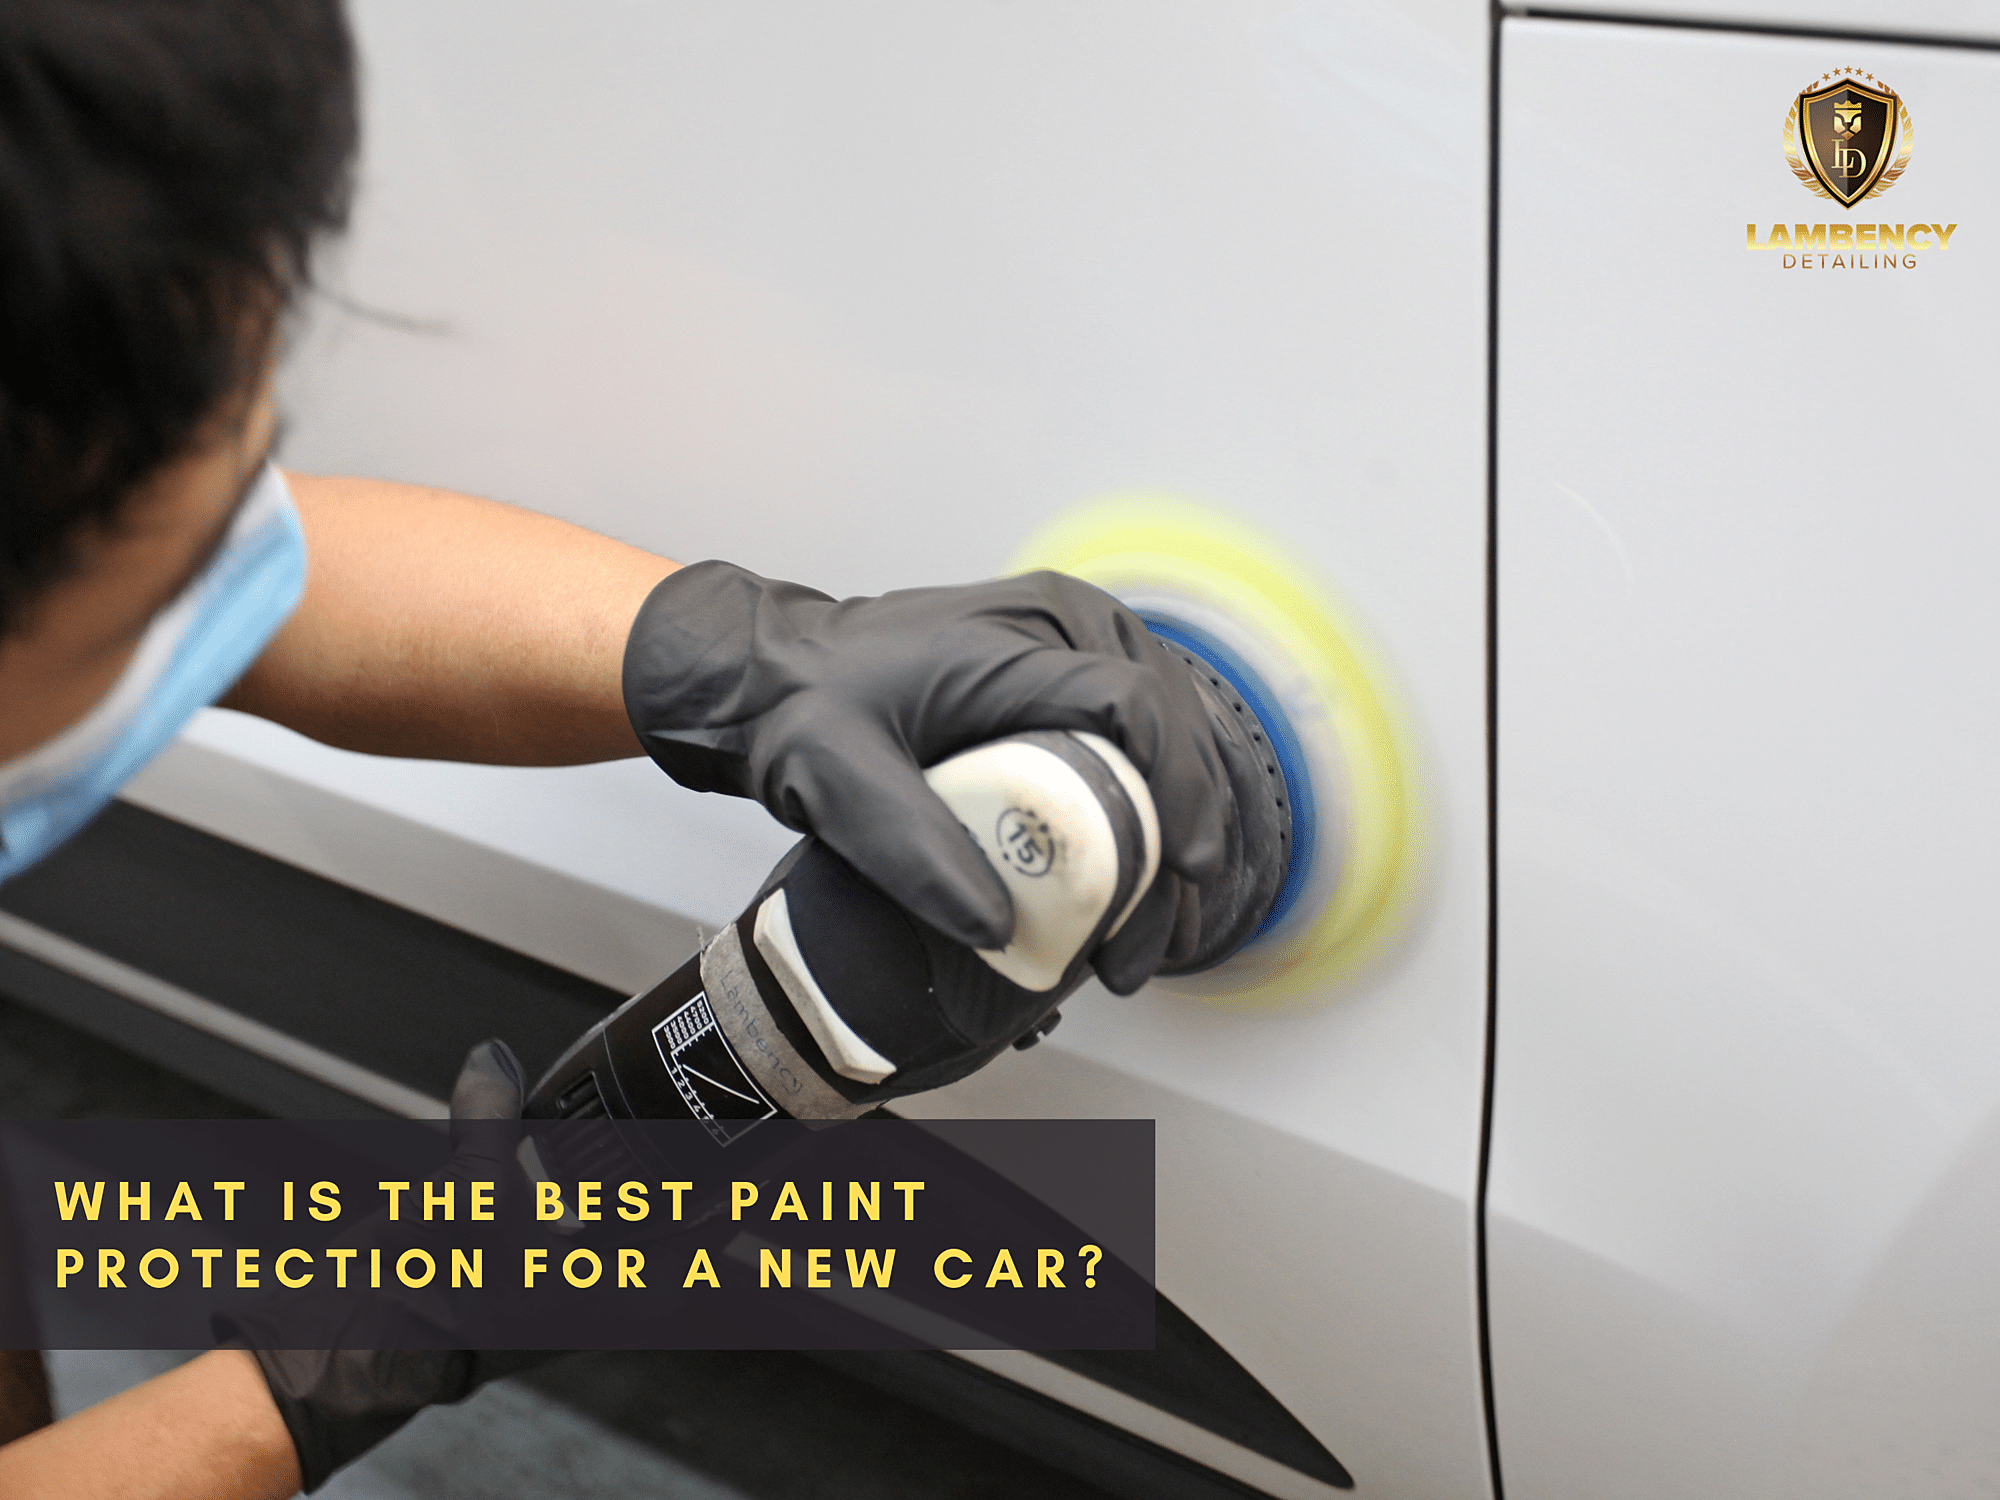 car paint protection | Lambency Detailing